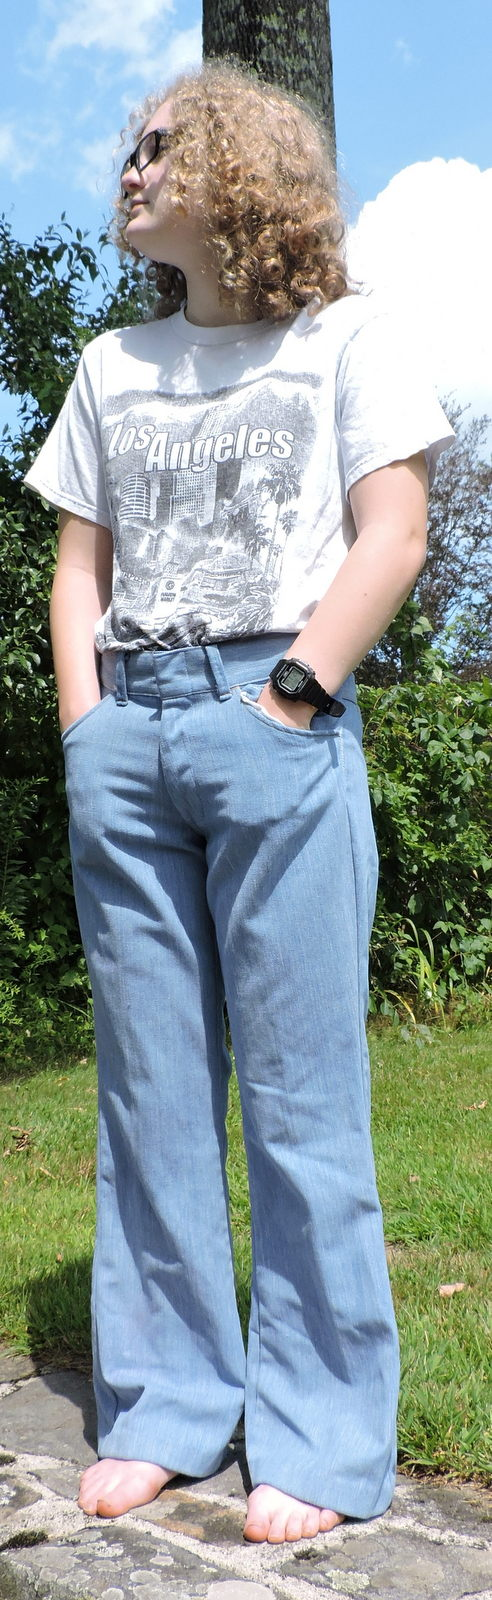 VINTAGE 1970'S LIGHT BLUE DENIM MEN'S PANTS W ANGLED REAR POCKETS SIZE INCH WAIST 1